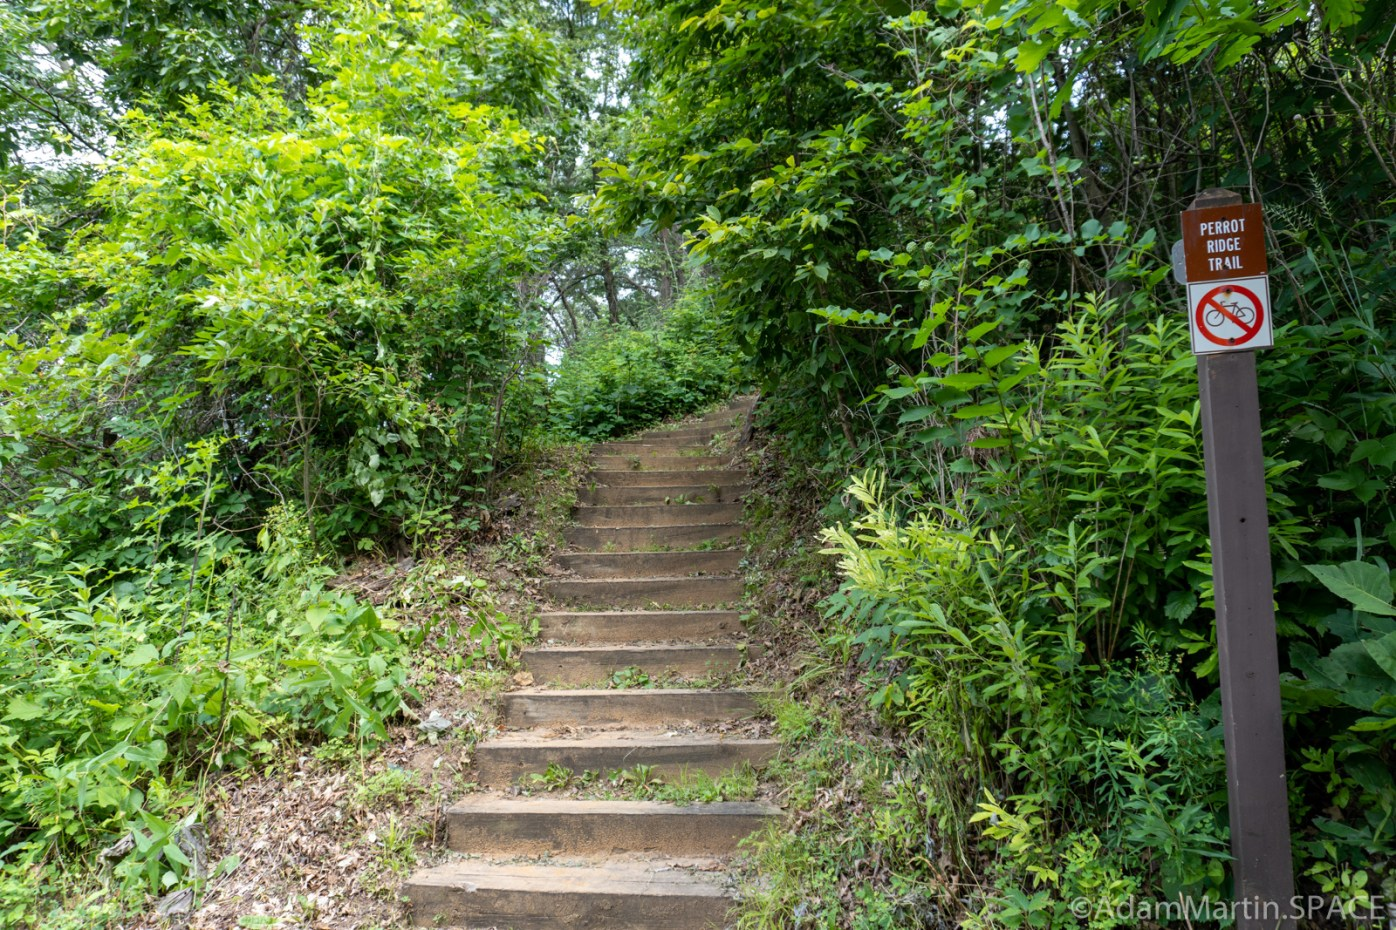 Perrot State Park - Steep stairs heading up to Perrot Ridge